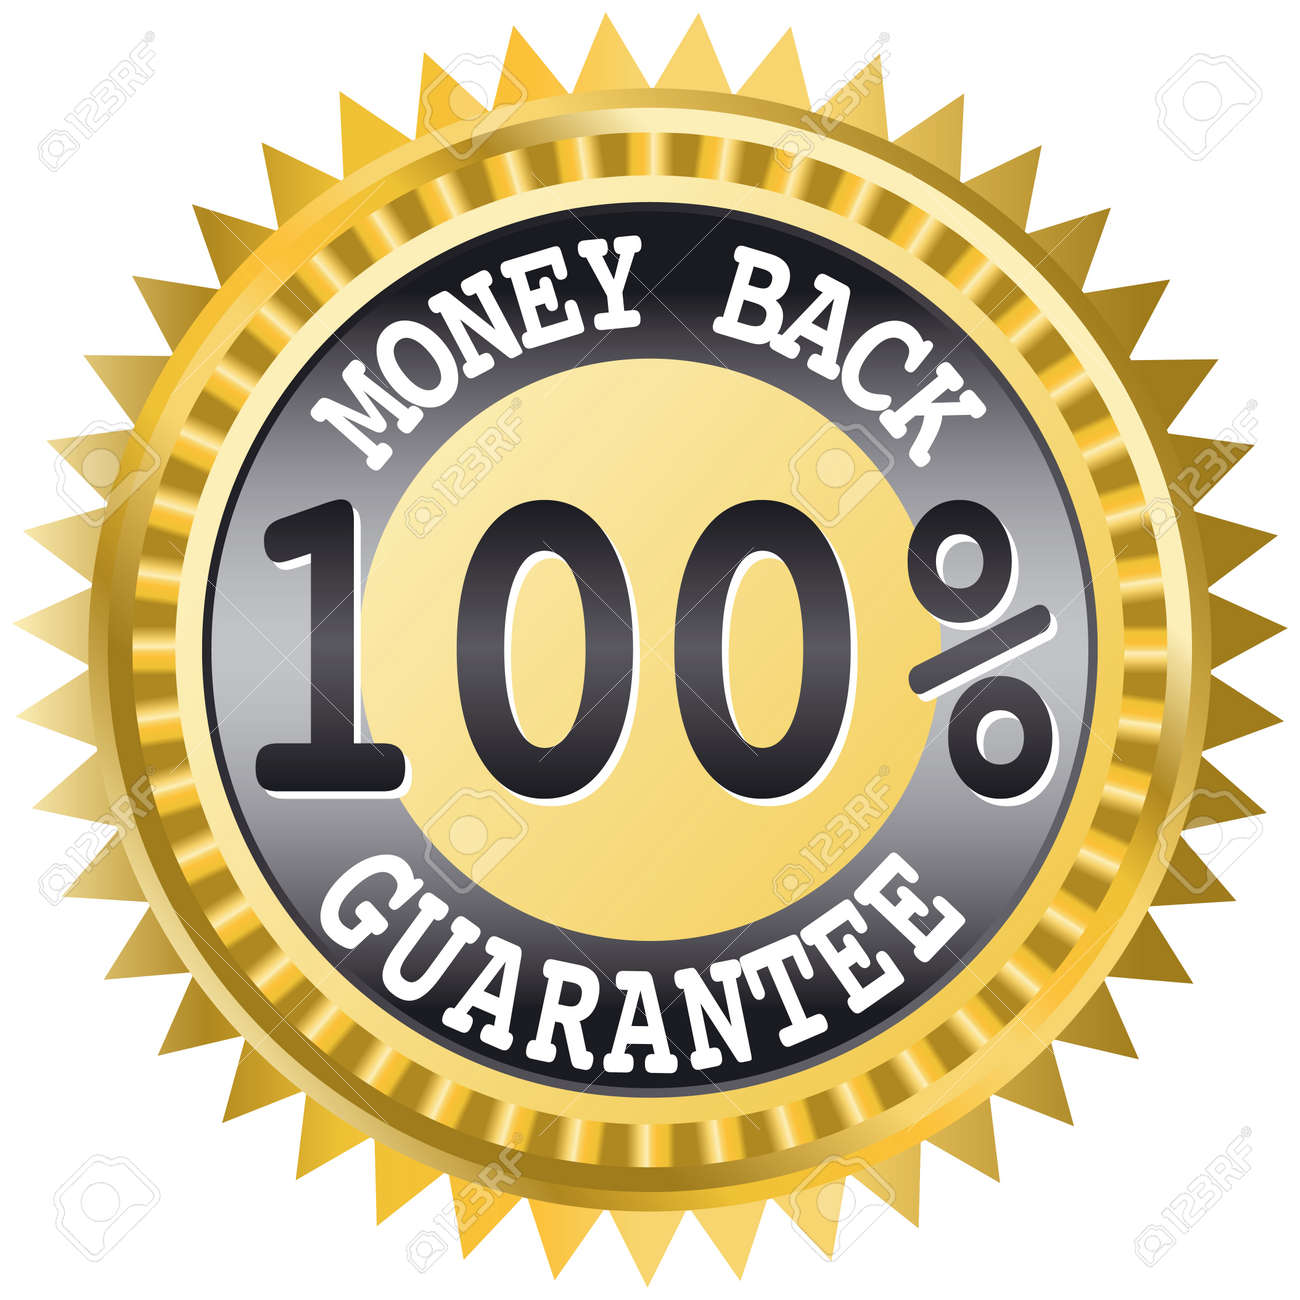 Money back label - this image is a vector illustration Stock Vector - 5587494